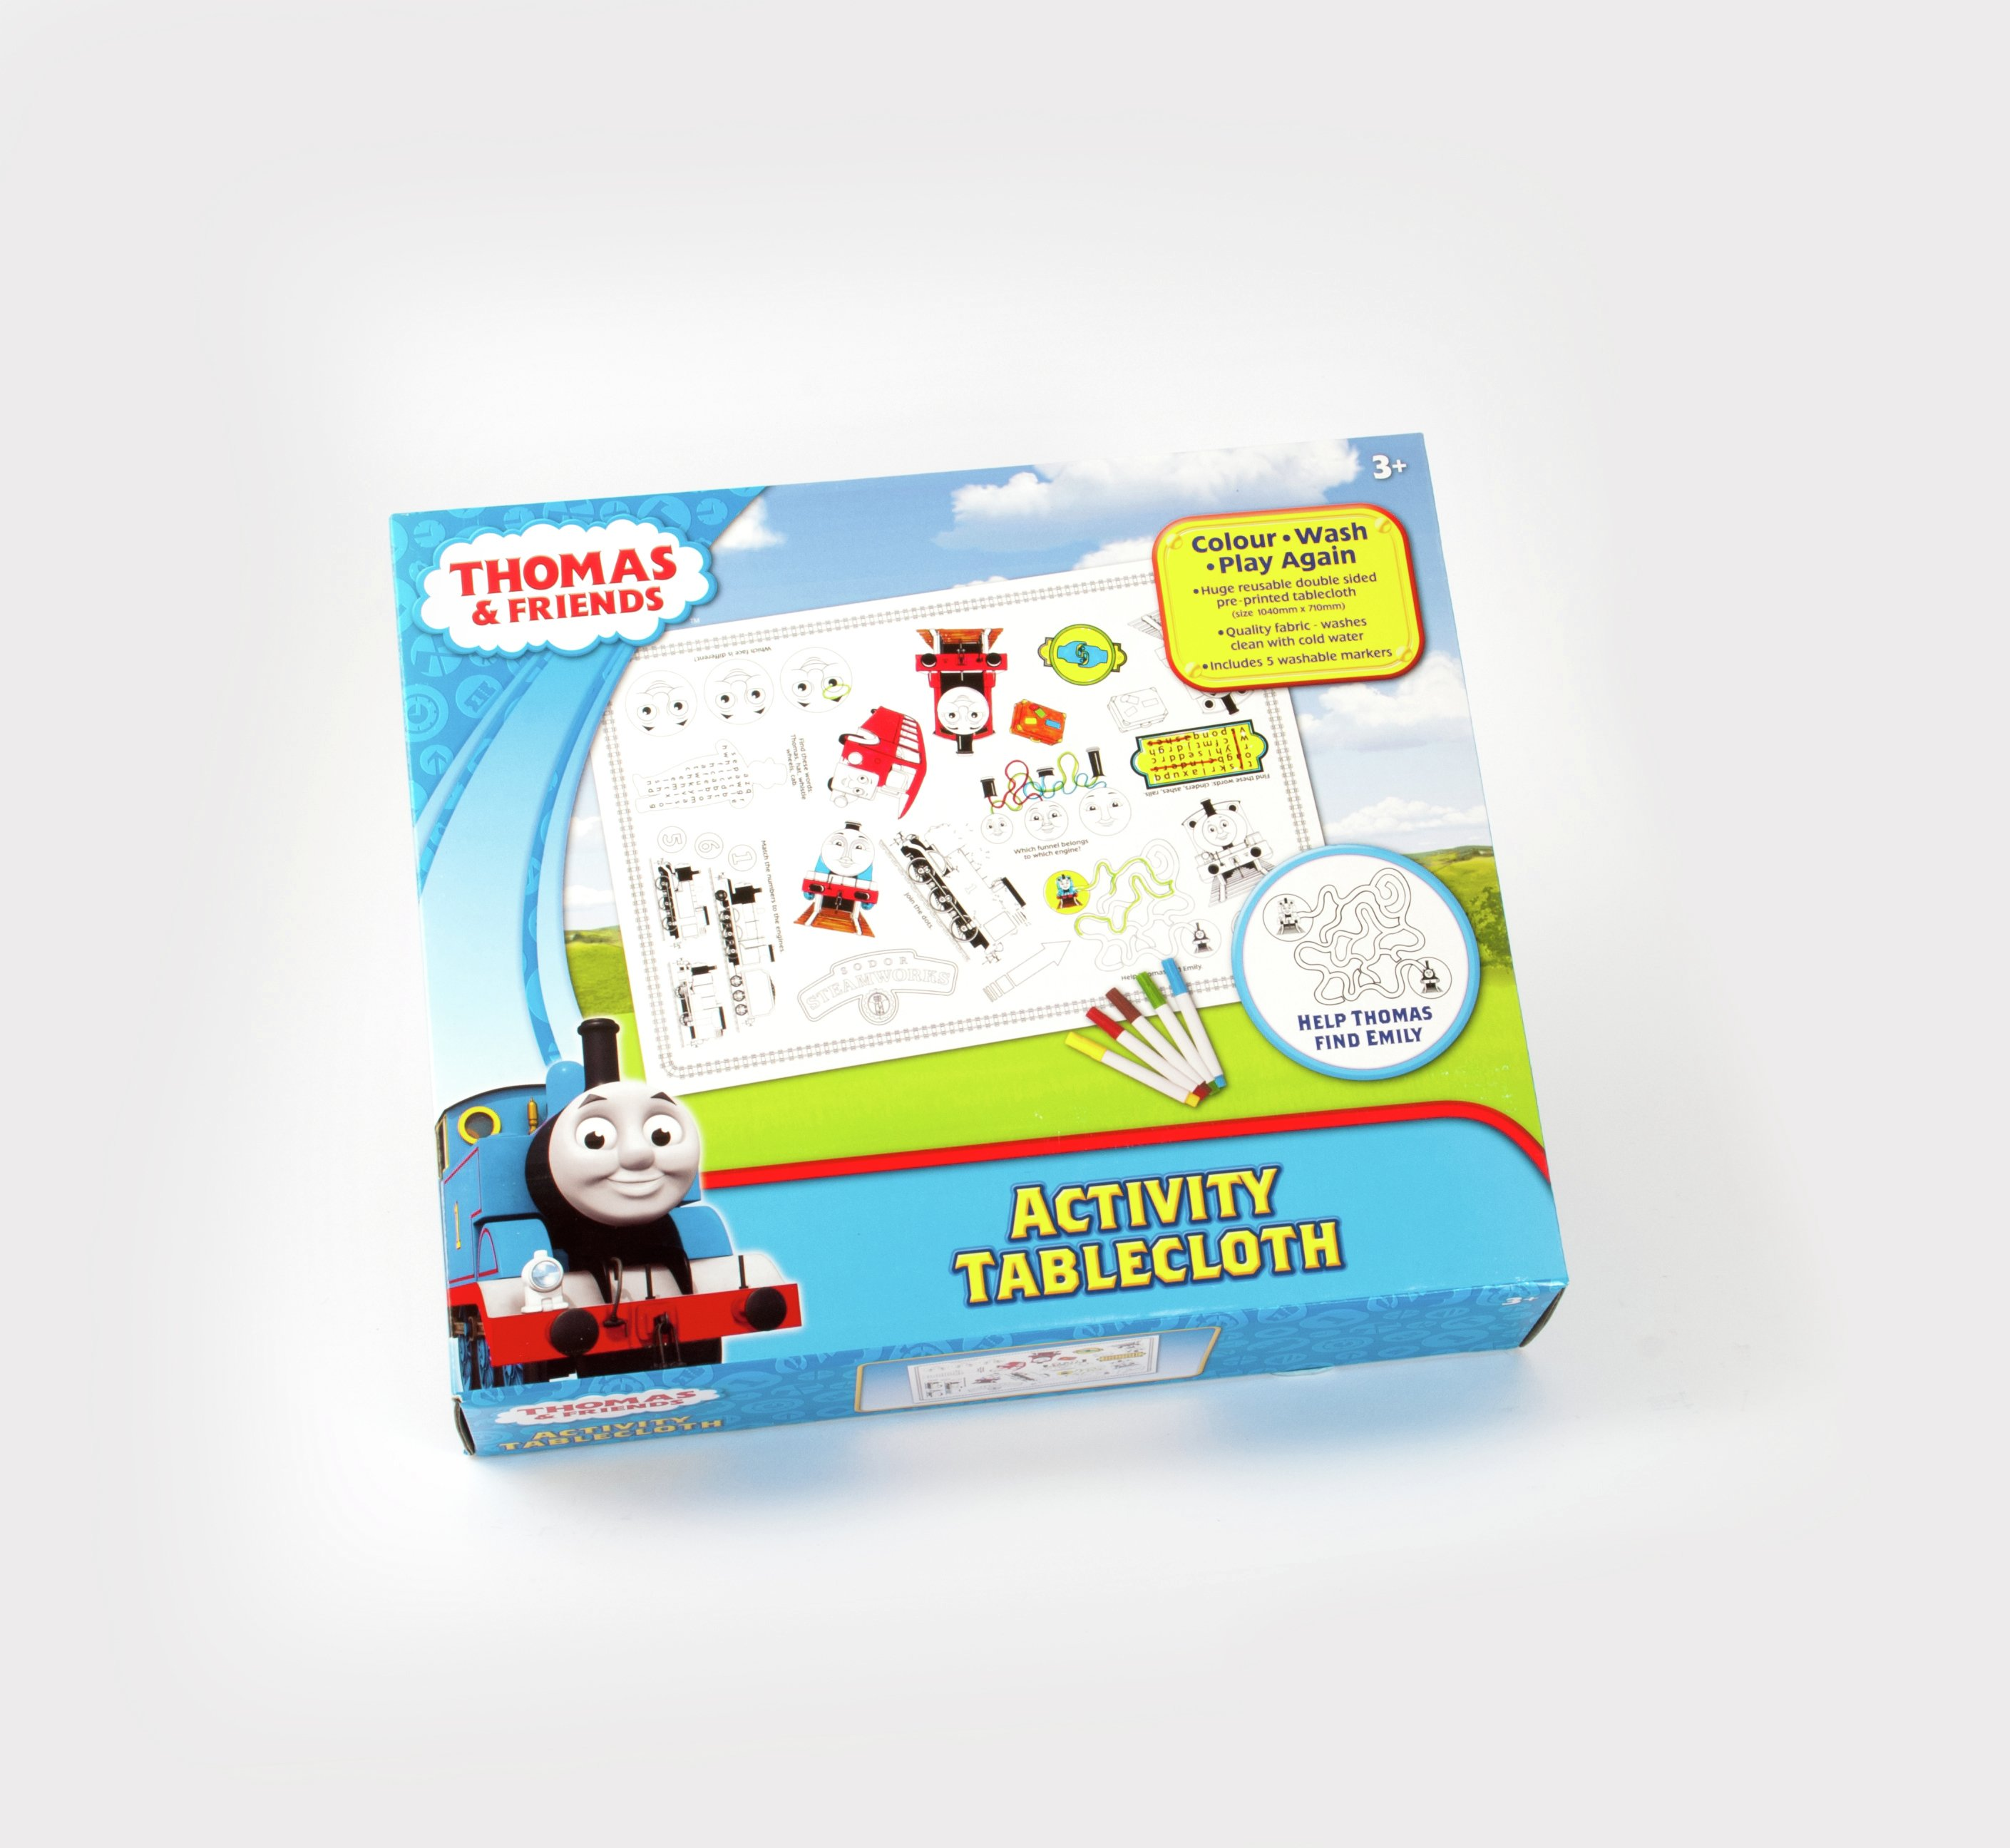 Thomas & Friends Tablecloth Game.